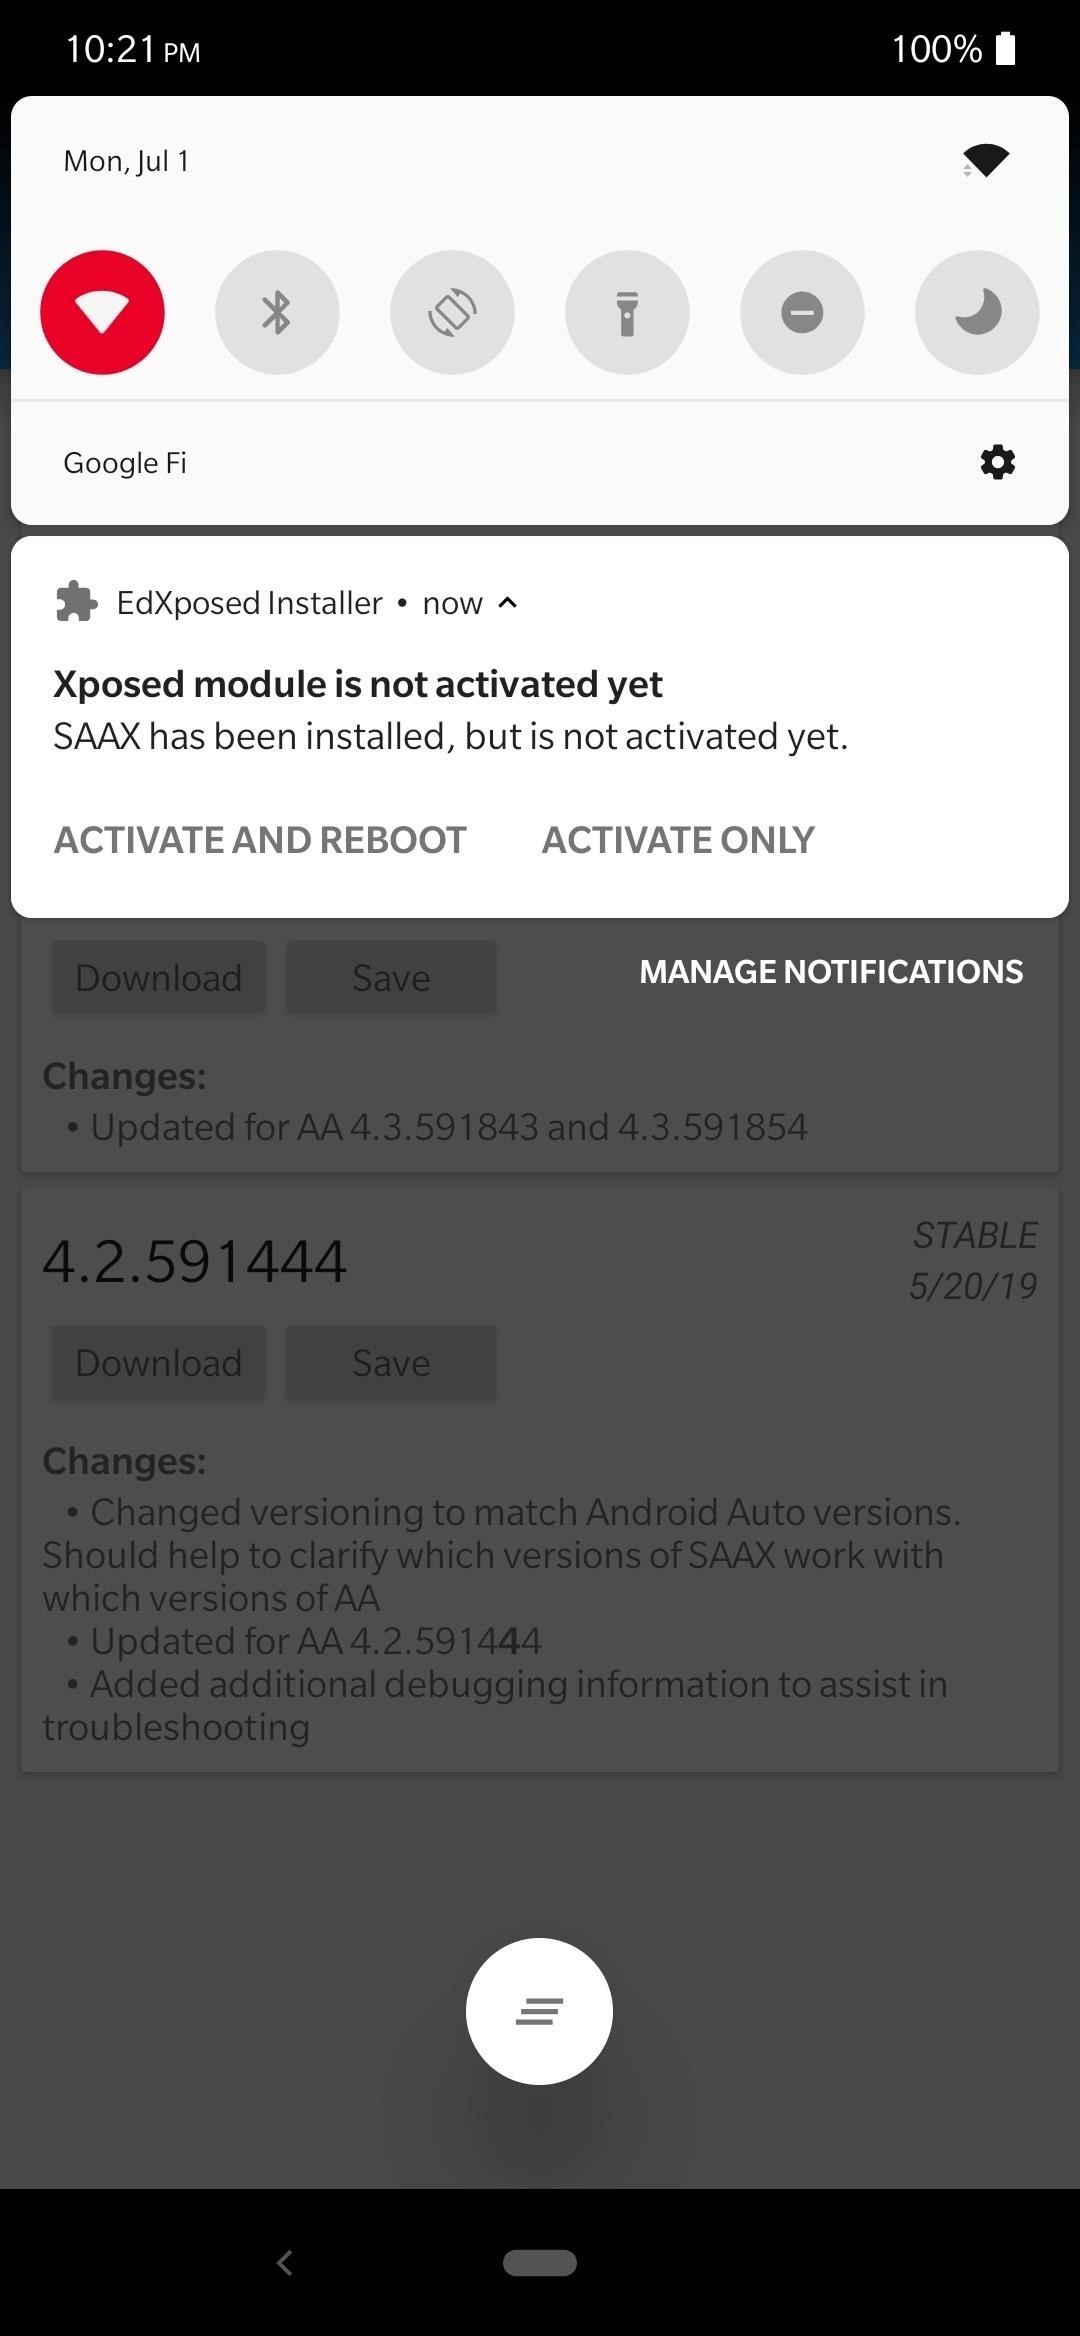 How to Install Xposed on Almost Any Phone Running Android 10 & Below